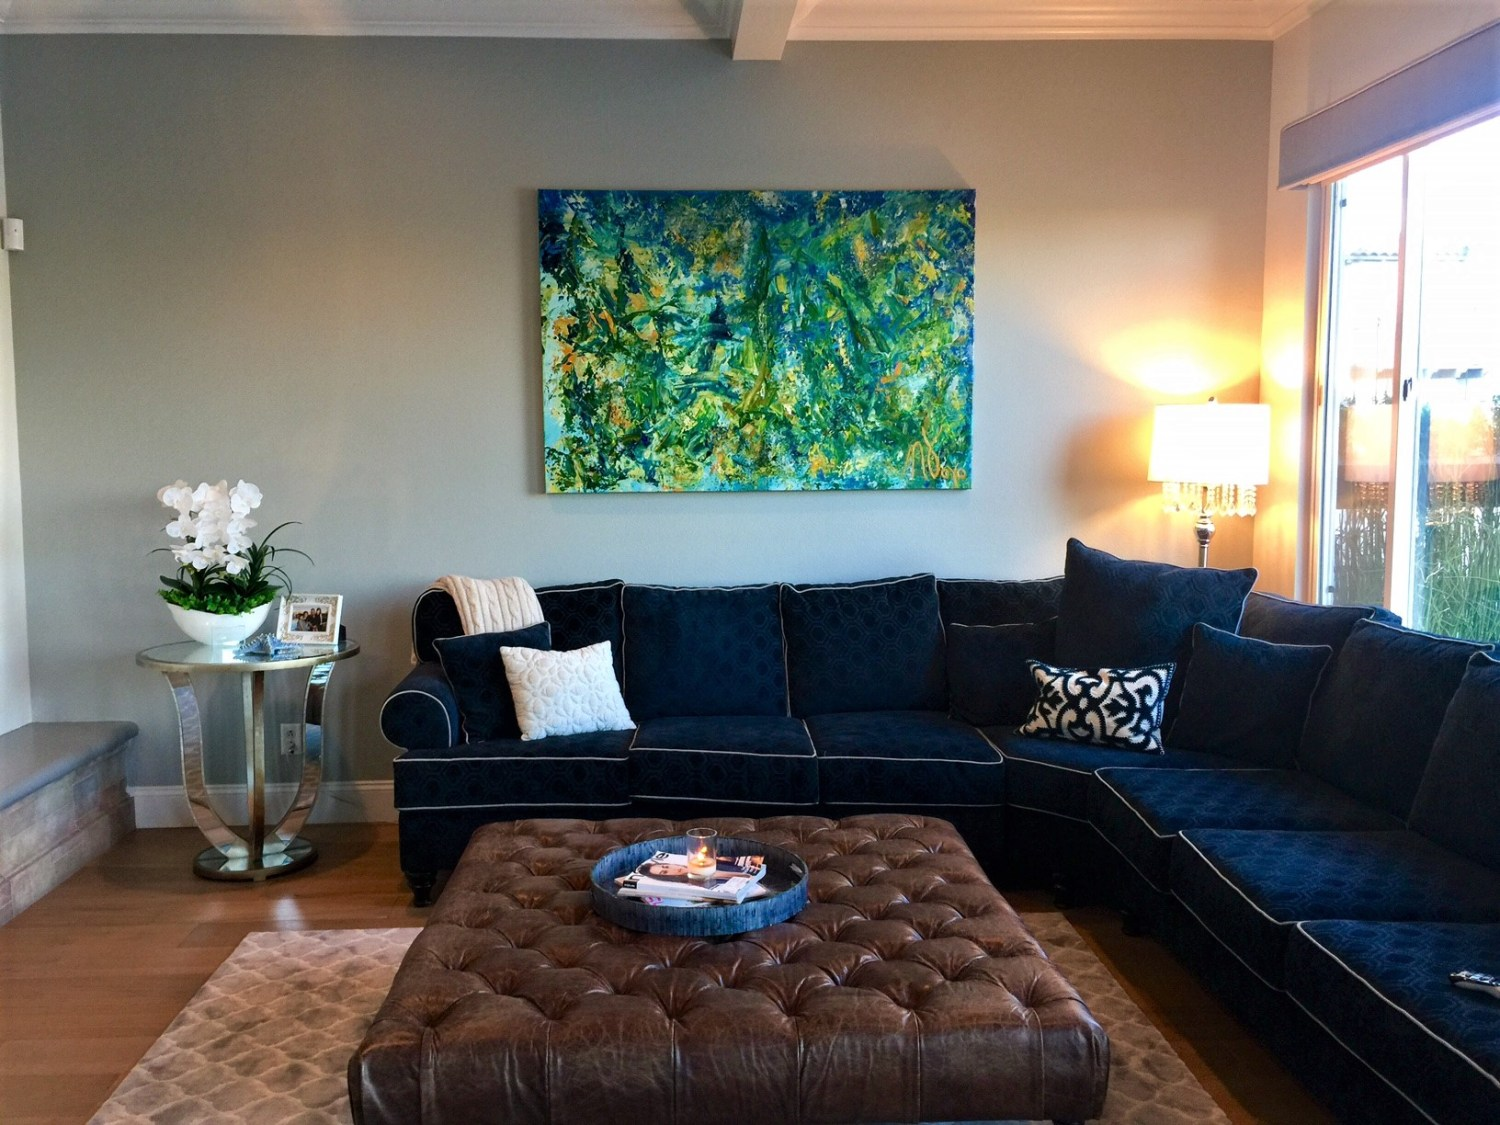 SOLD - Terra Verde in collector's beautiful home in Long Beach California - Abstract art by Nestor Toro